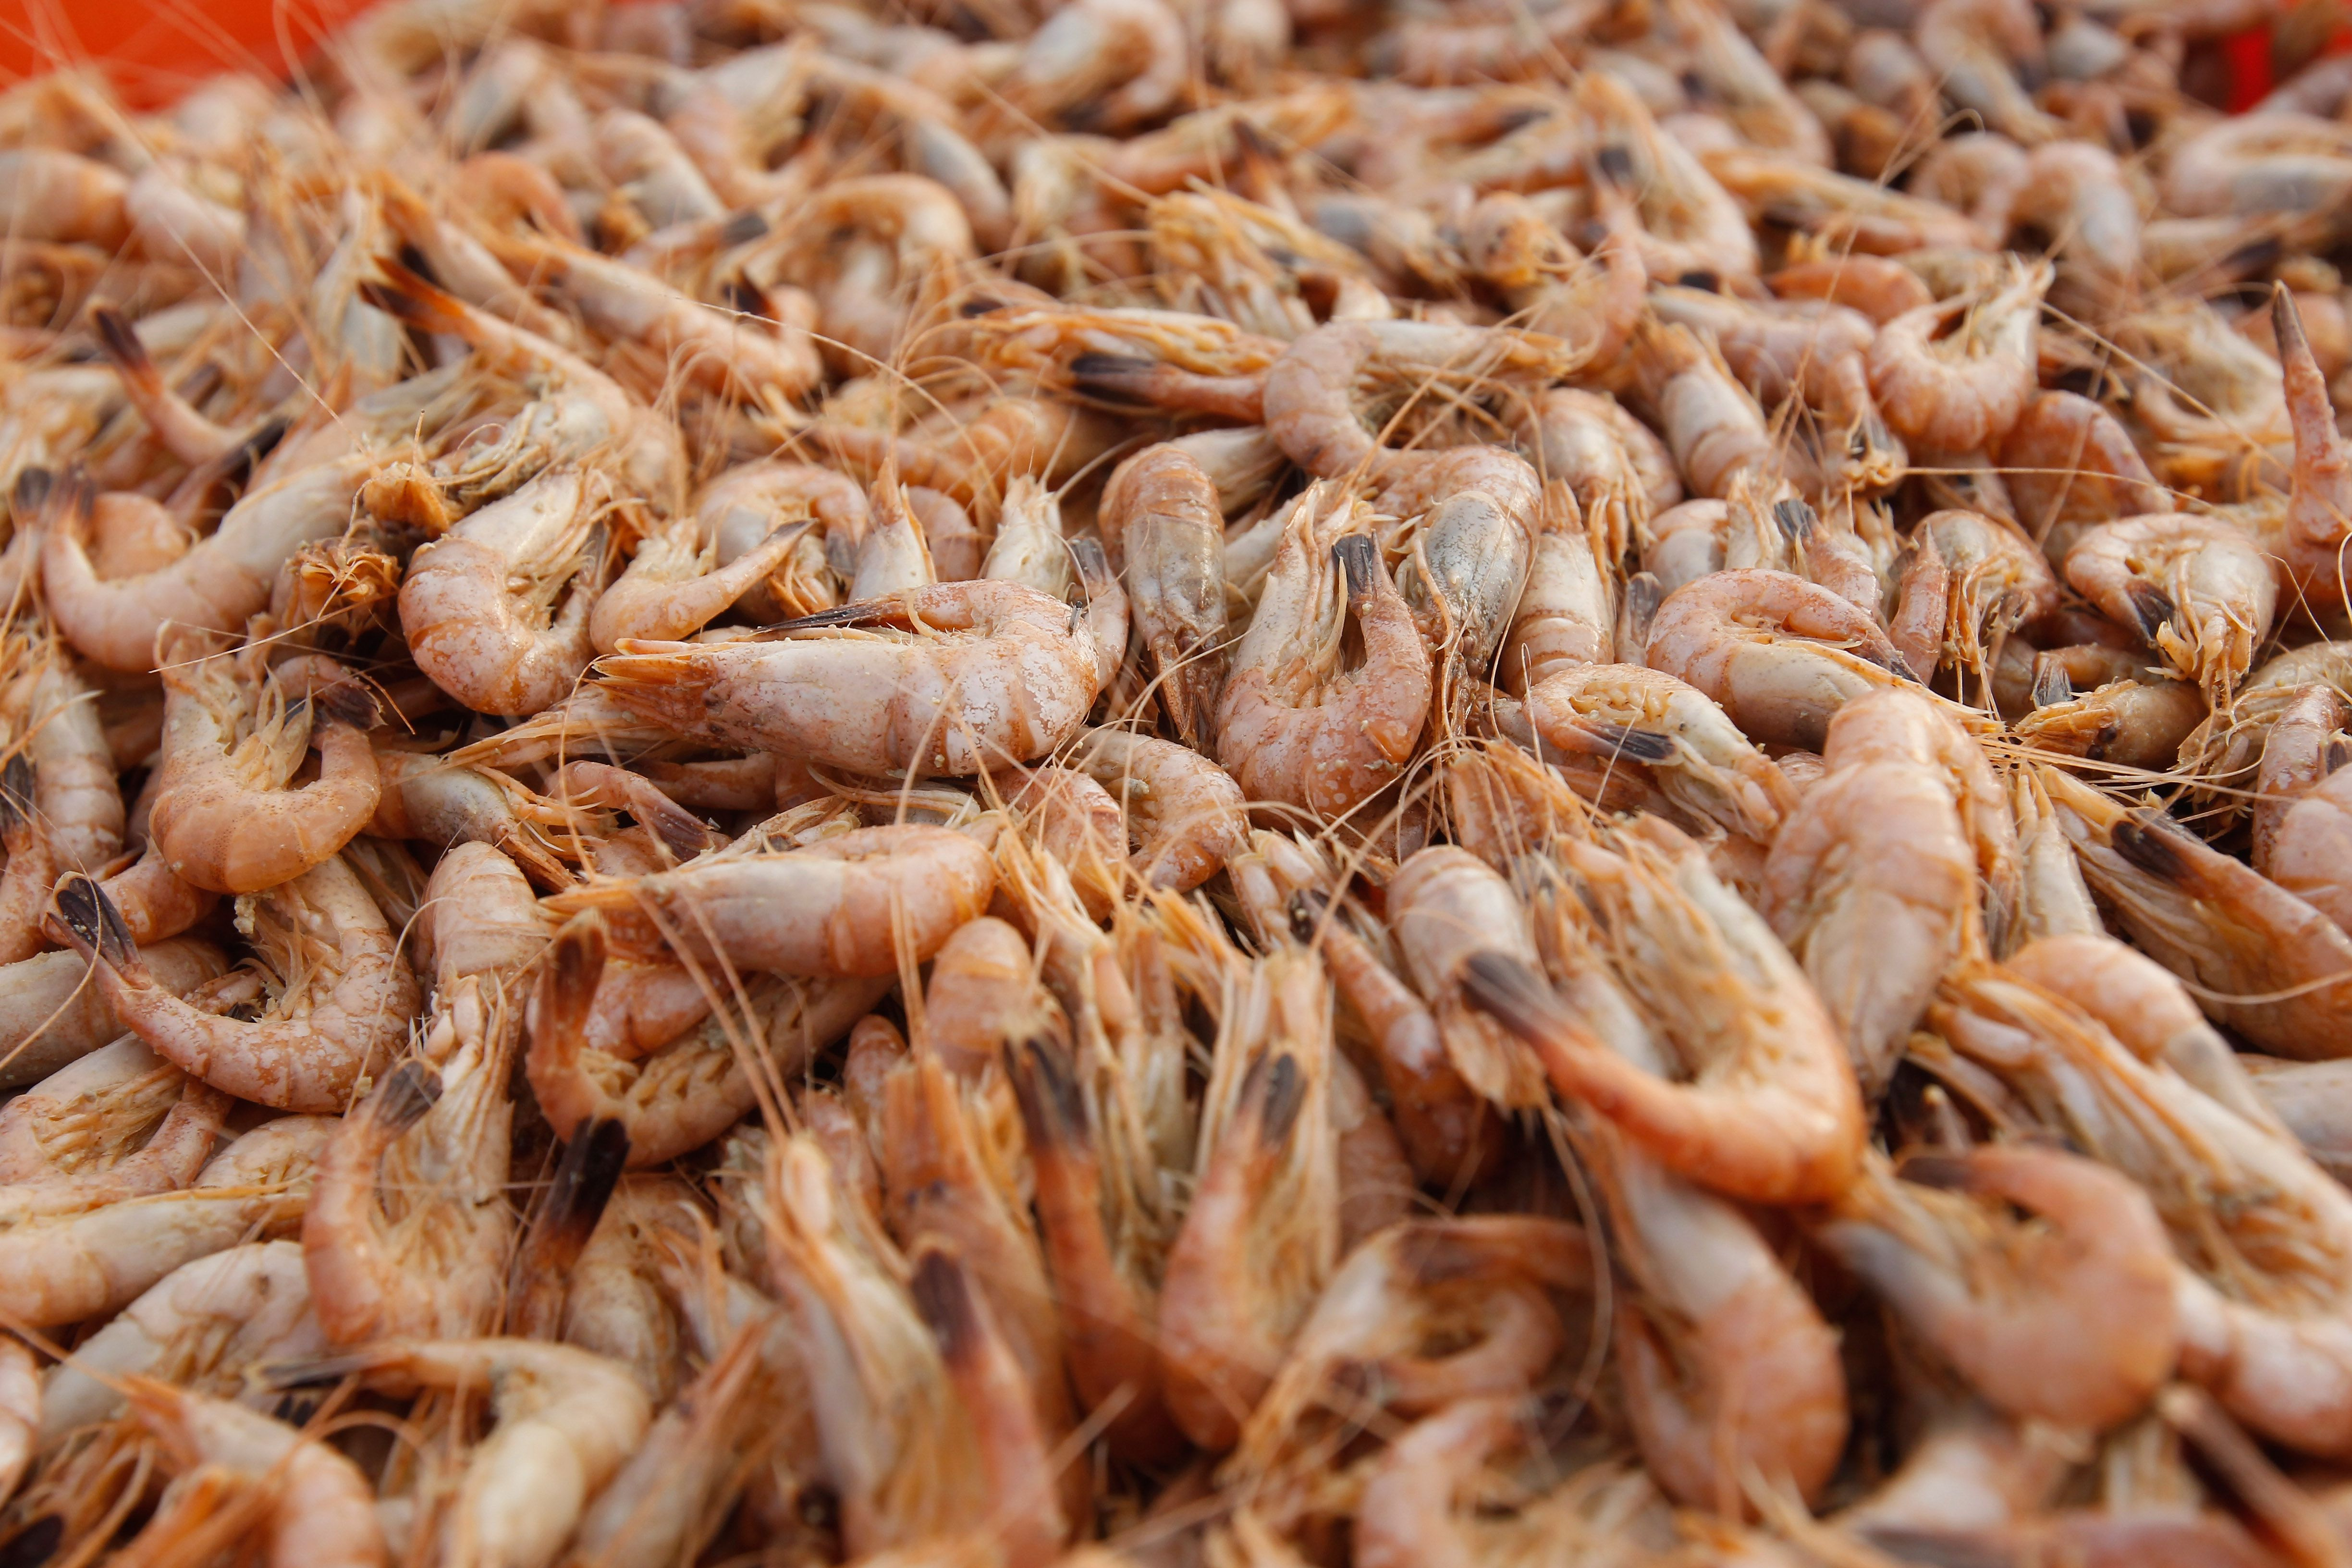 American Shrimp Types: Wild-Caught and Farmed